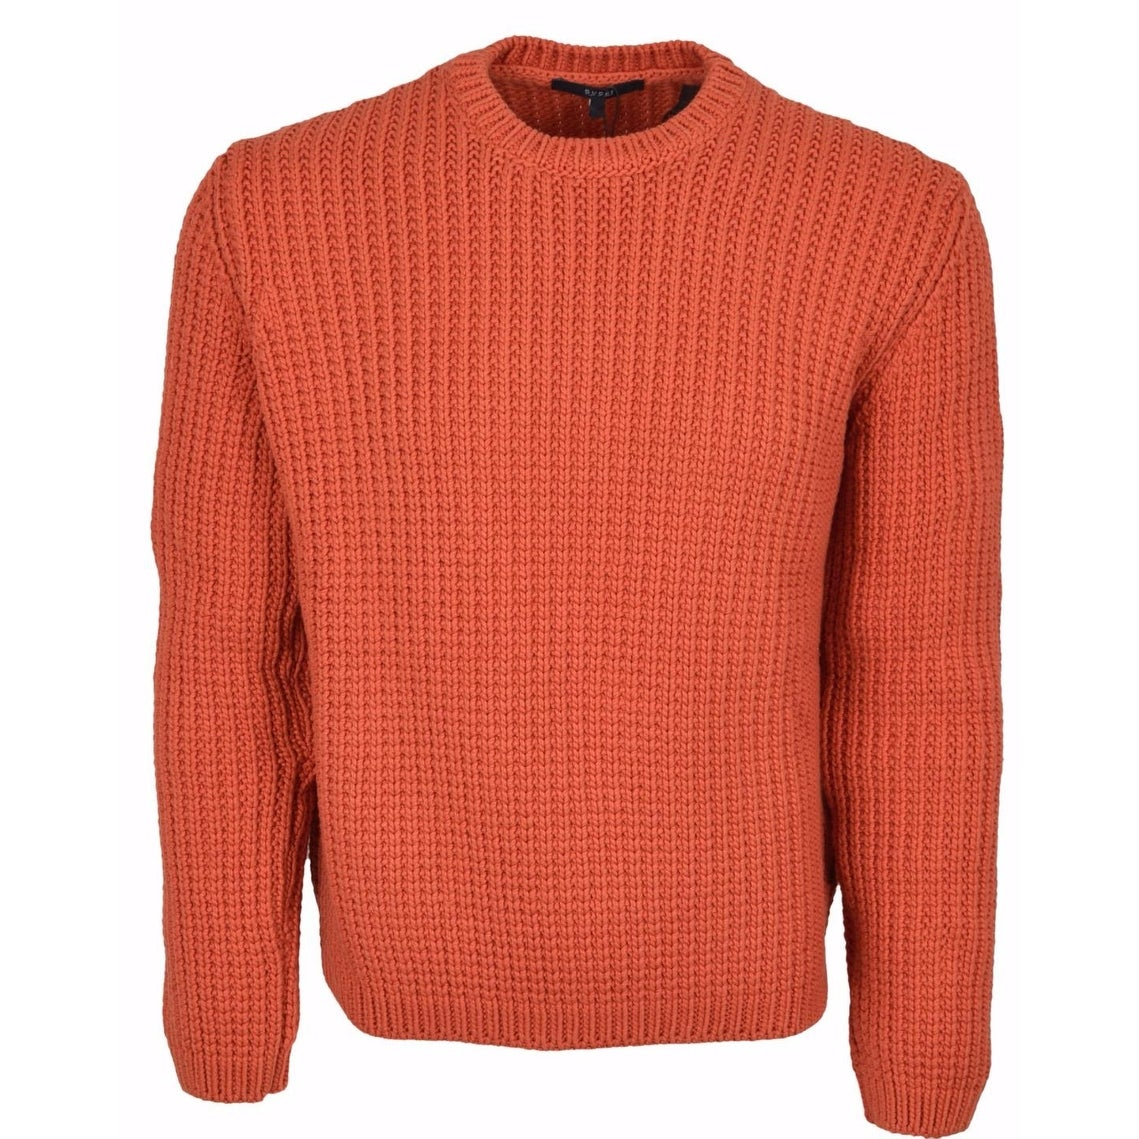 492ccc91 Shop Gucci Men's Heavy Orange Ribbed Tab Logo Cotton Sweater Shirt L - Free  Shipping Today - Overstock - 12400816